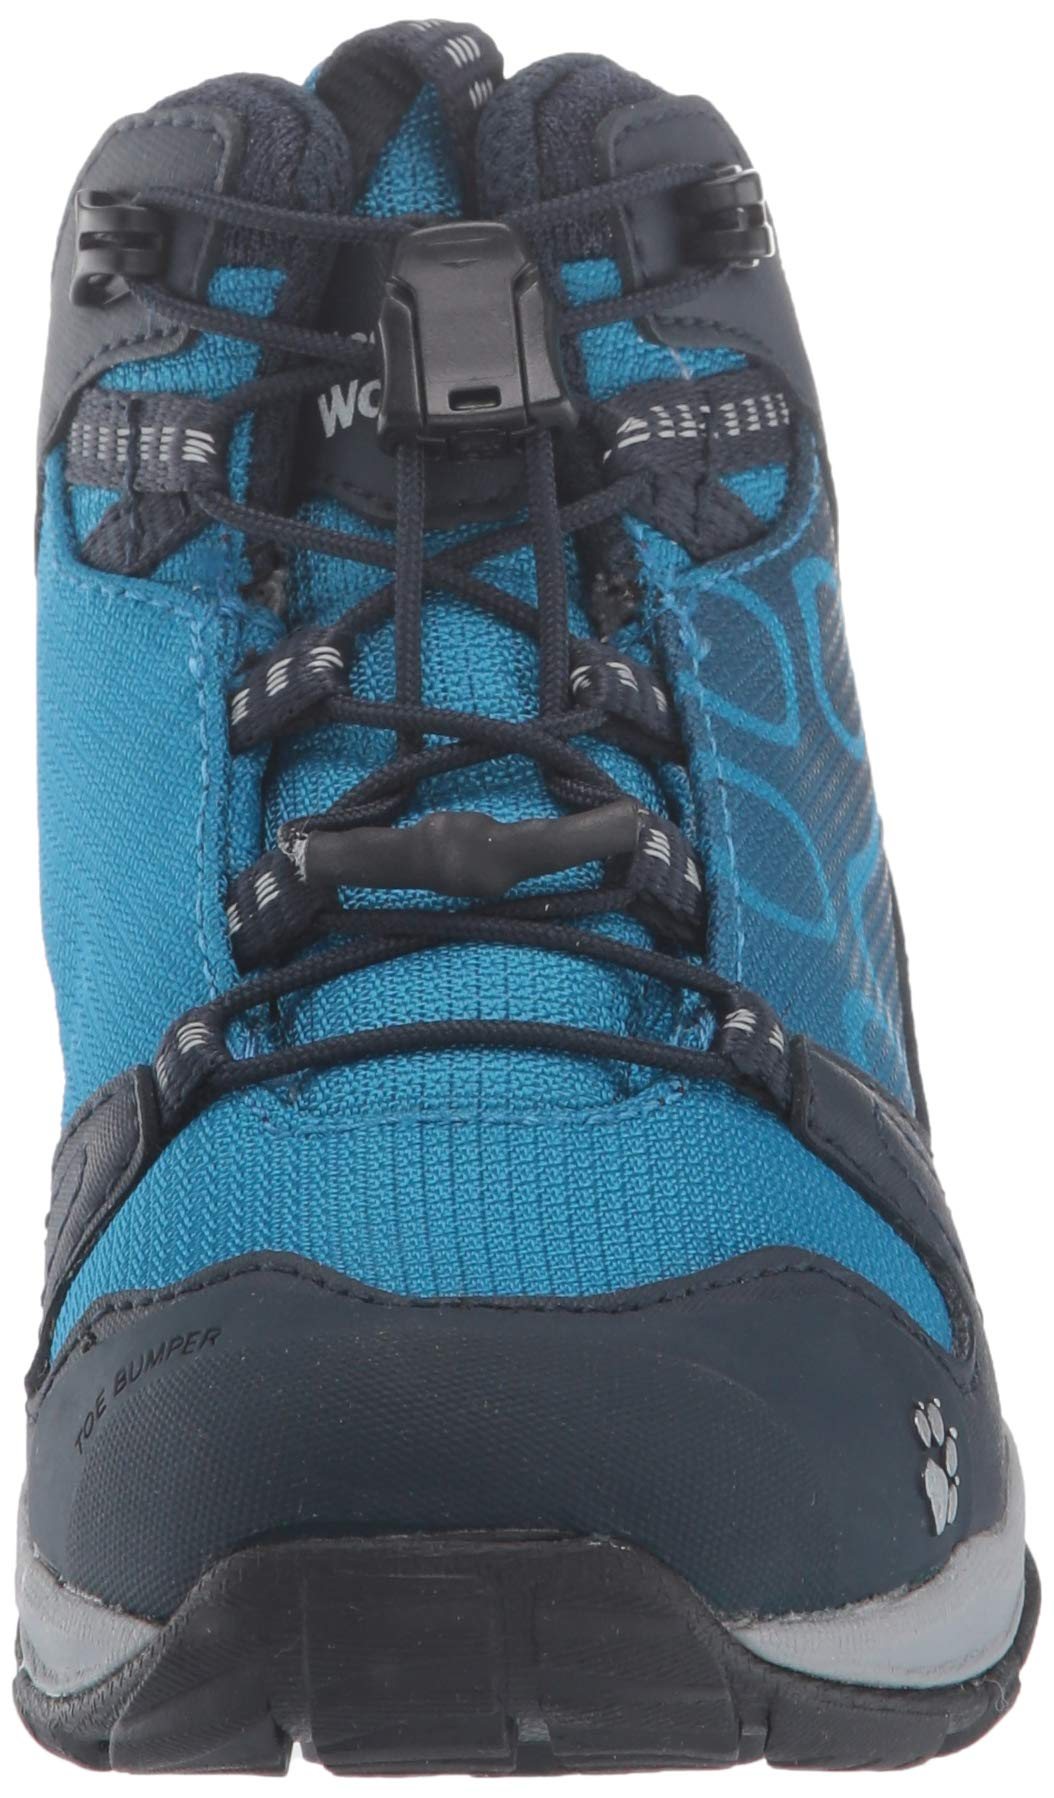 Jack Wolfskin Boys Akka Texapore Mid B Wasserdicht High Rise Hiking Shoes, One Size 4